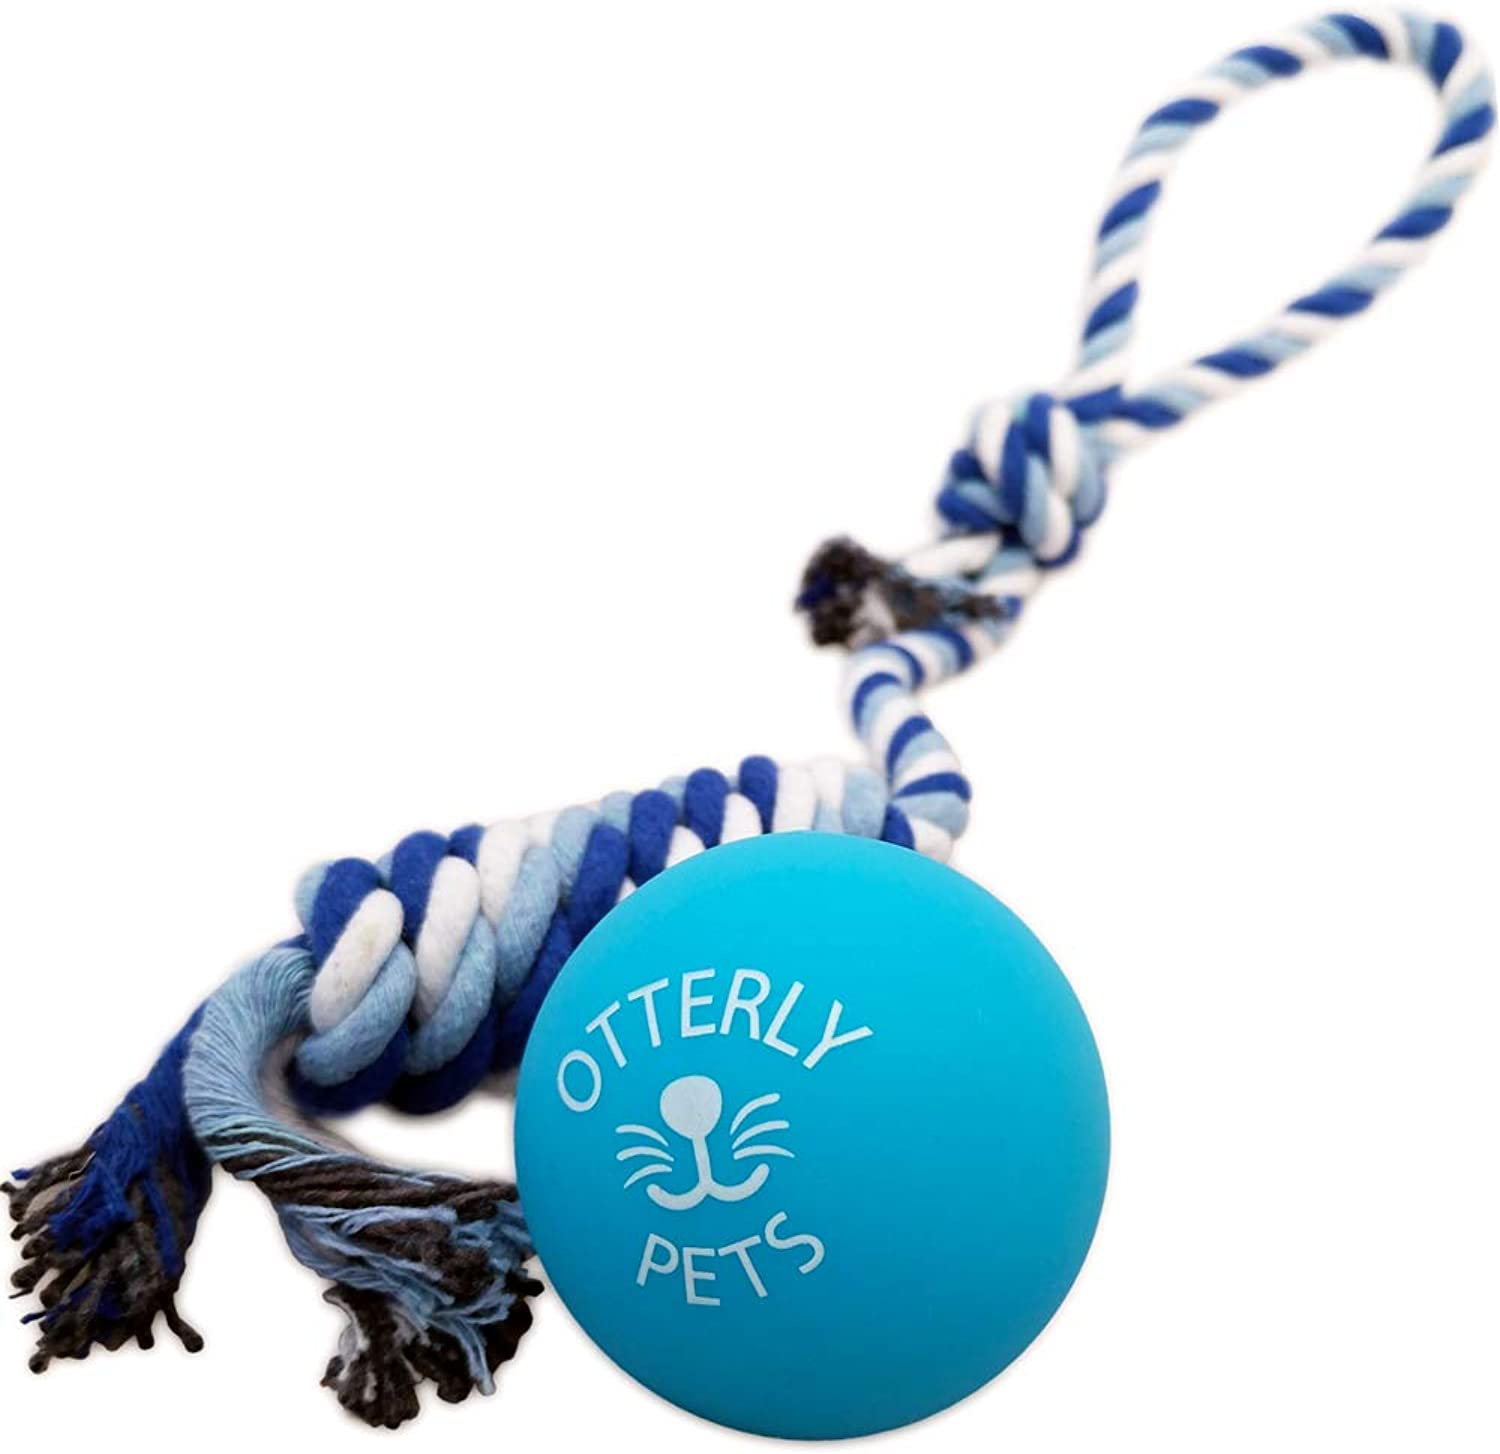 Otterly Pets Bouncy Ball Dog Toy  100% Natural FoodGrade Rubber SolidCore  Strong (But Not Indestructible) for Aggressive Chewers (bluee)